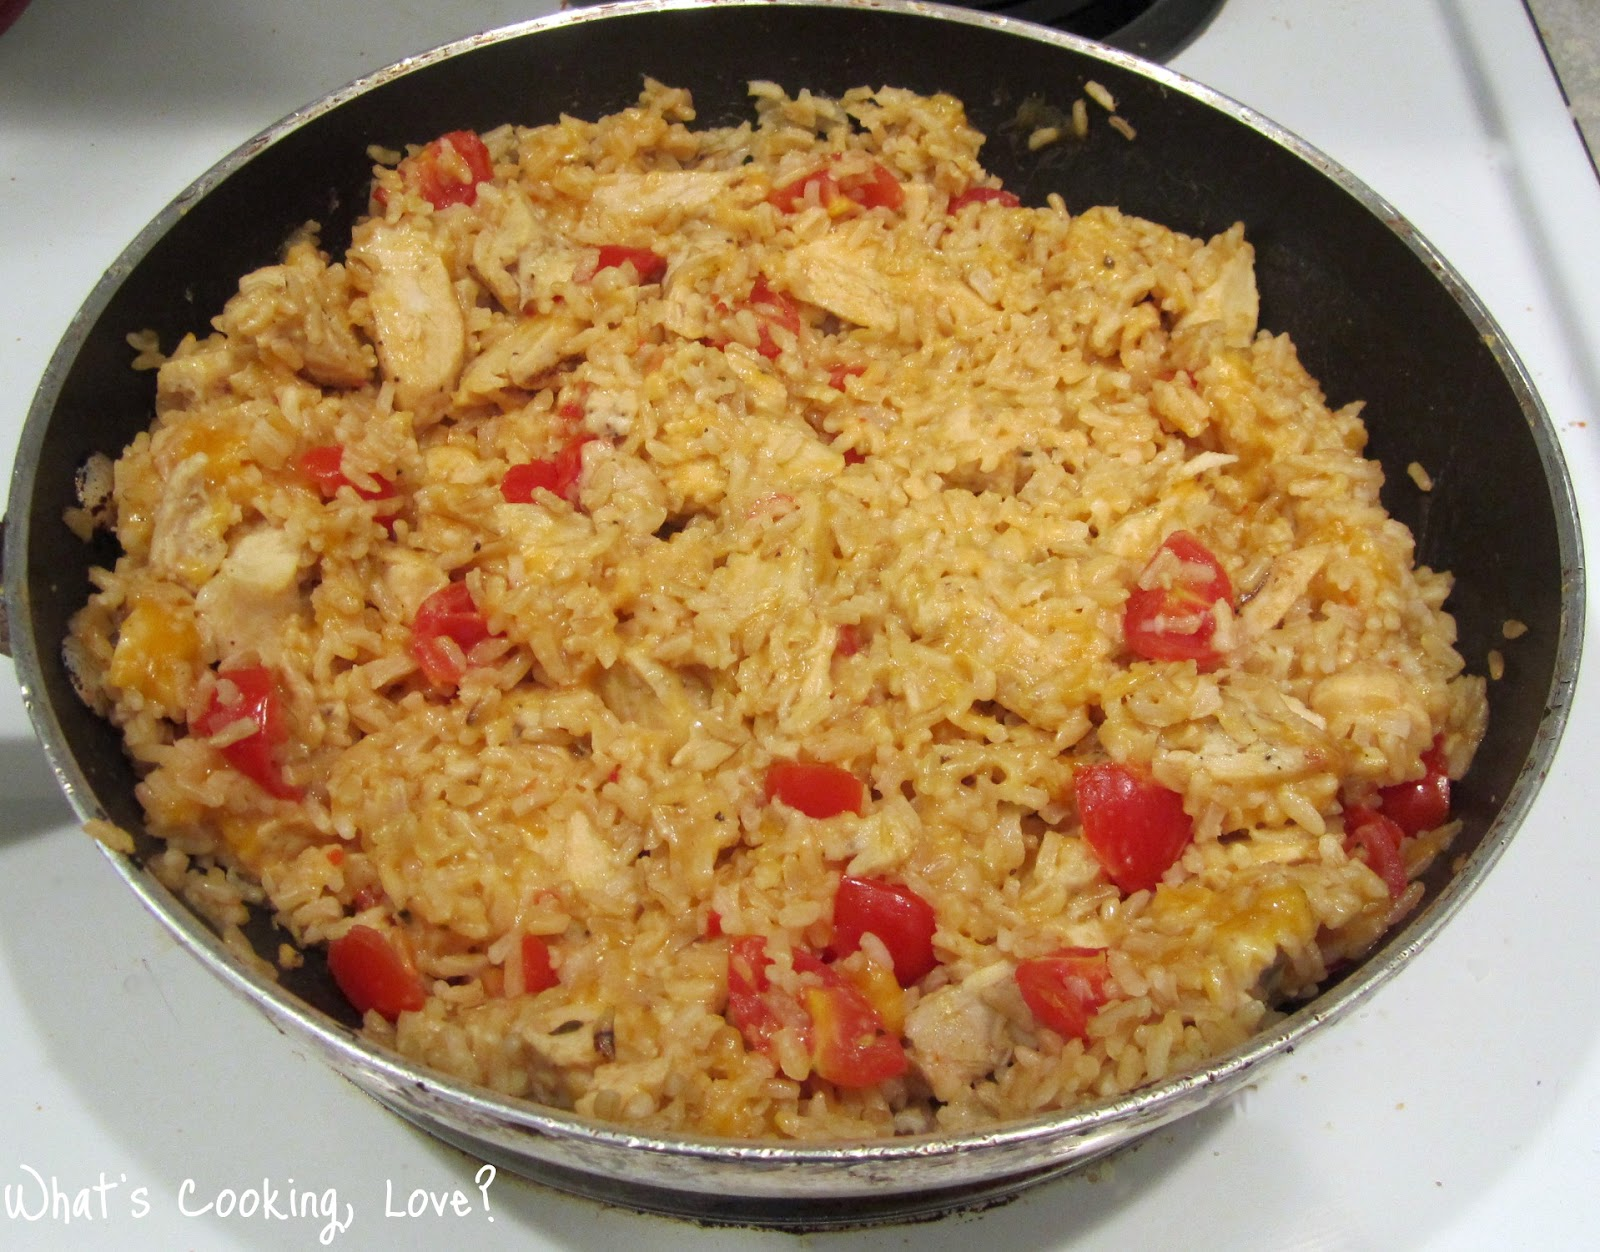 Cheddar Chicken and Rice Skillet - Whats Cooking Love?